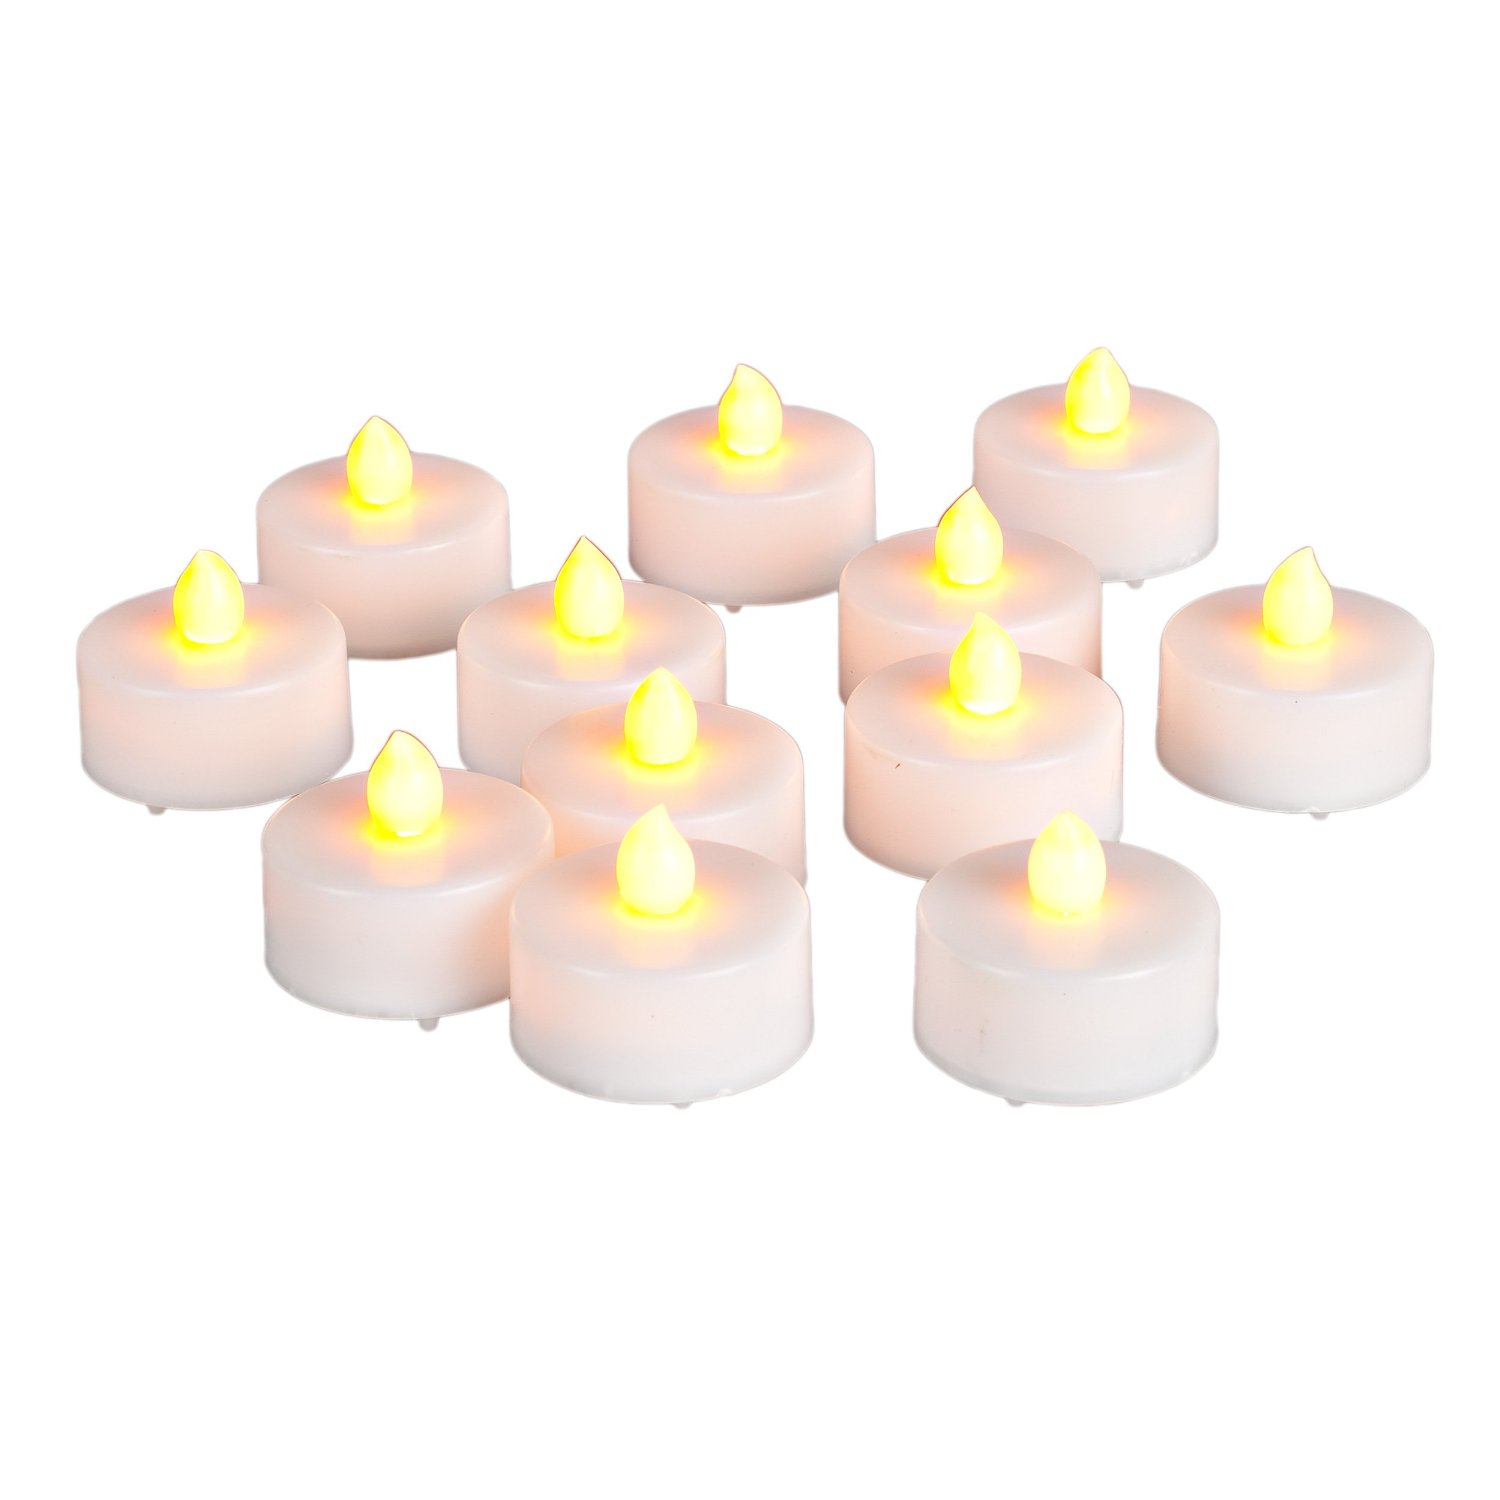 reviews unscented pcr lighting operated amazon in battery candles tealight magicpro customer rated powered best light fake tea helpful lights led flameless com